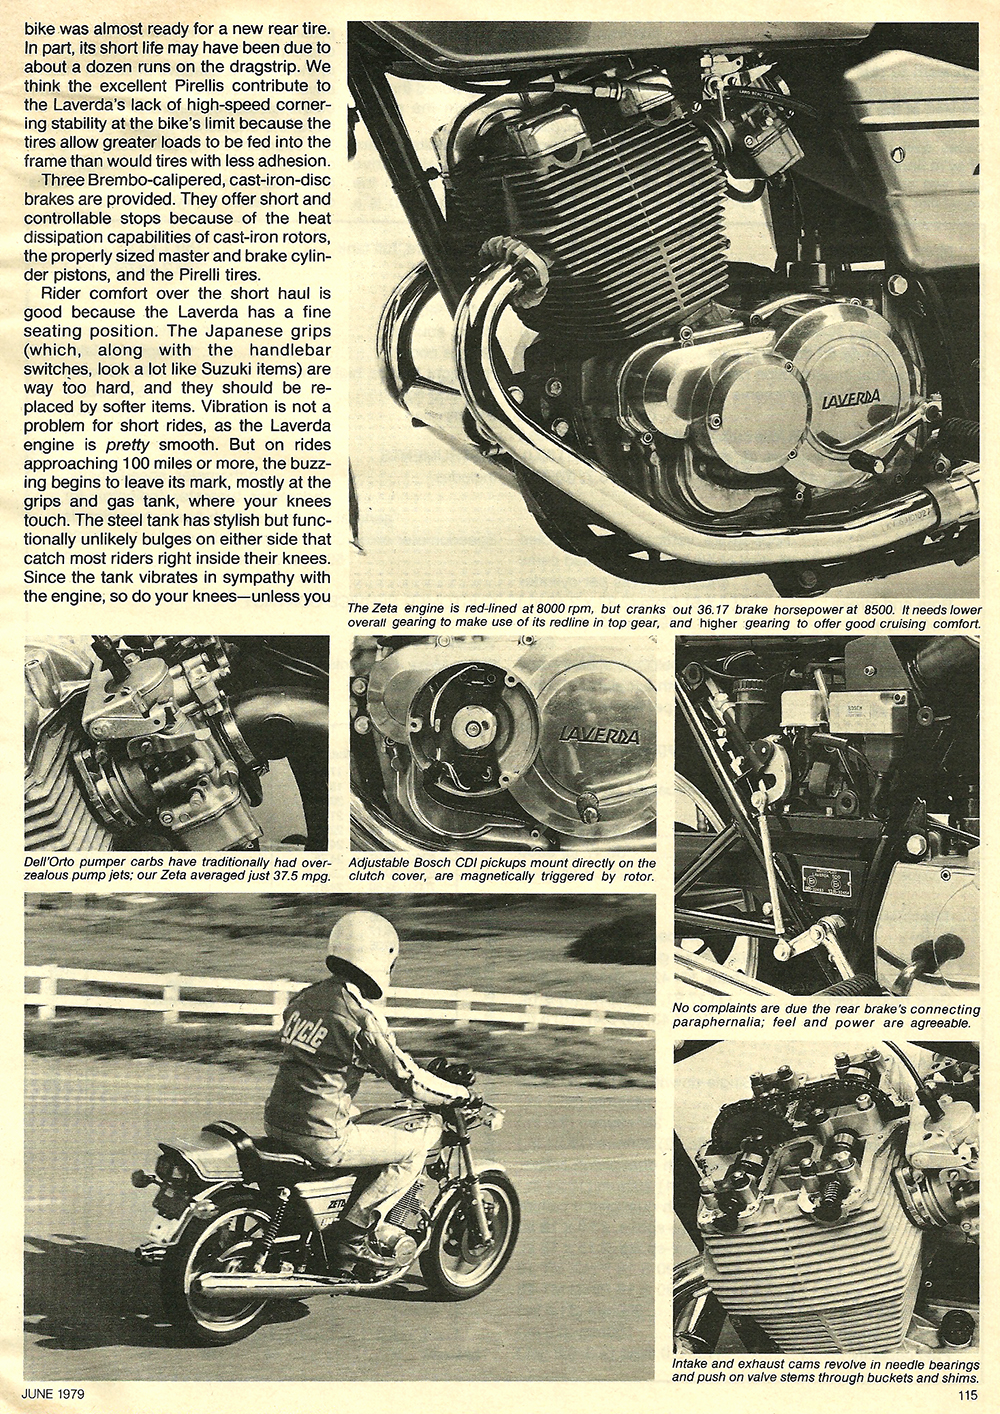 1979 Laverda 500 Zeta road test 6.jpg